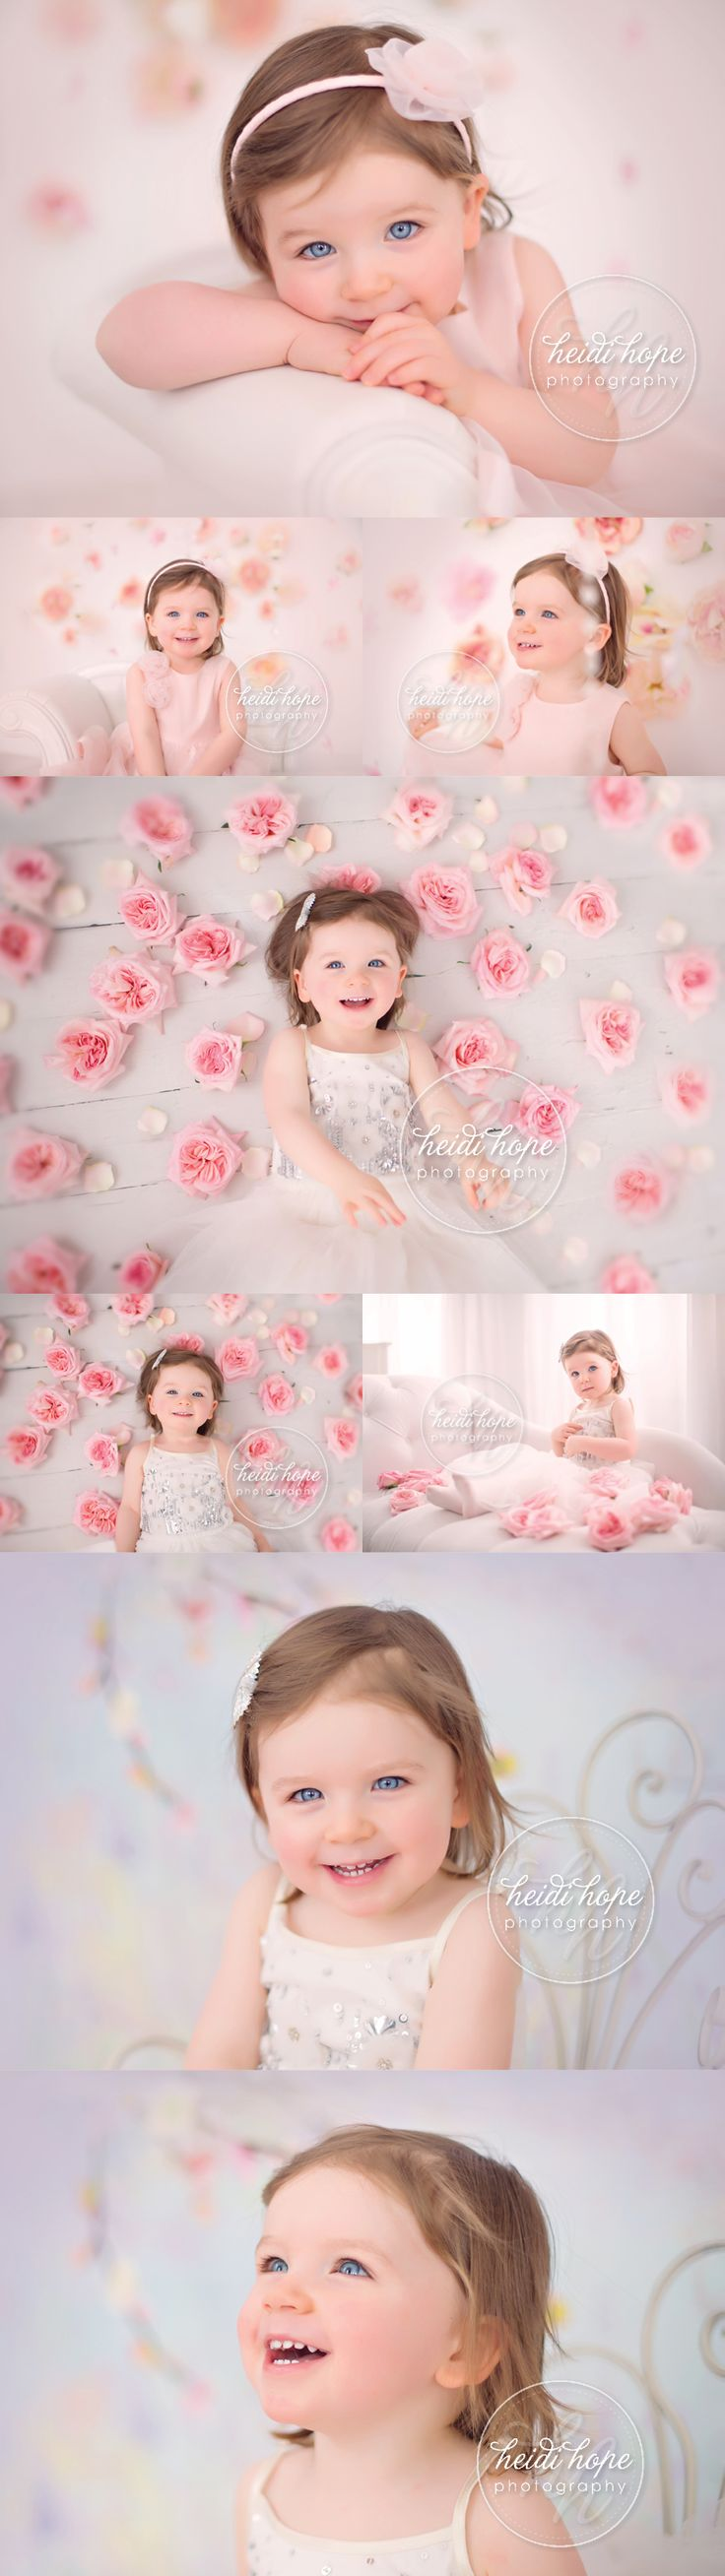 Photos of a two-year-old little girl surrounded by pink flowers